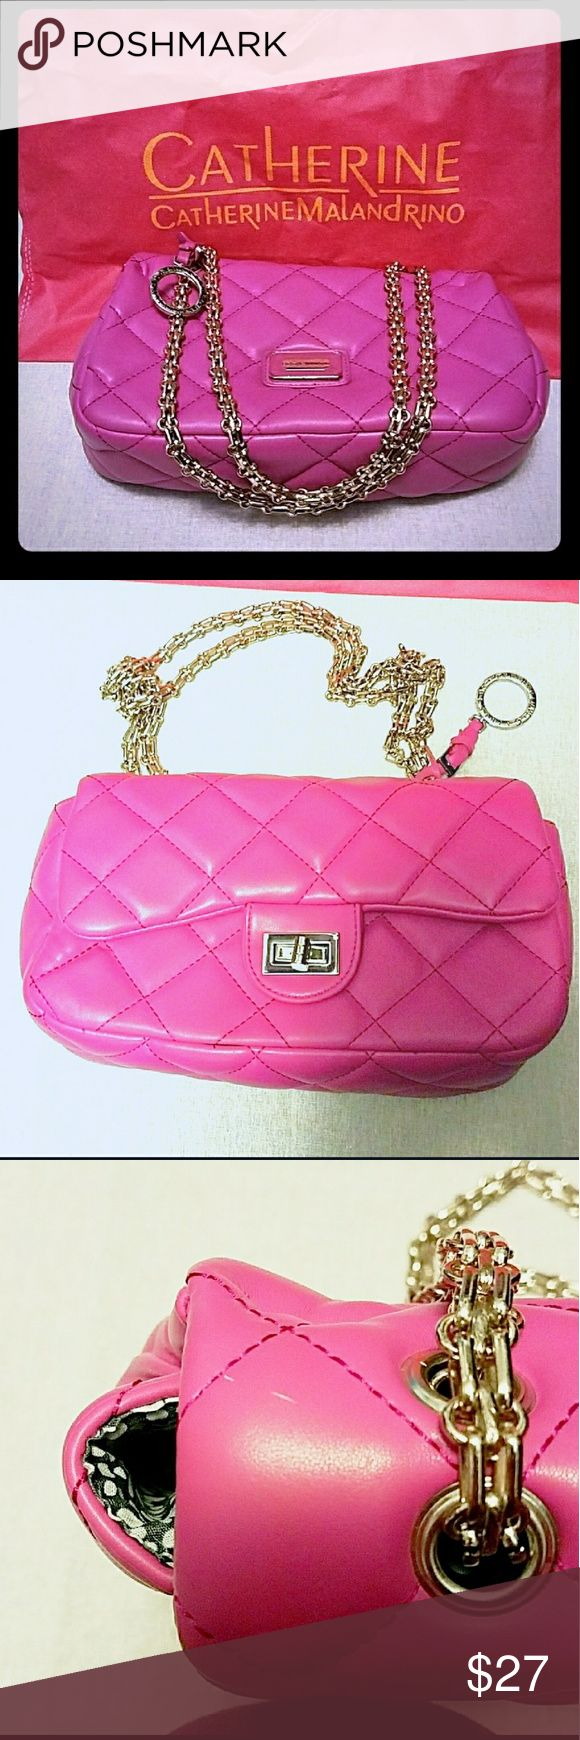 "Catherine Maladrino Pink Quilted Shoulder Bag. Faux leather hot pink quilted shoulder bag. On two small mark as seen in pic 2. I only used it once so otherwise it's in clean and beautiful shape. Still has dust bag. Length 10"", Width 3 and half inches, Height 6"". Ask any questions you may have💜 Catherine Malandrino Bags Shoulder Bags"